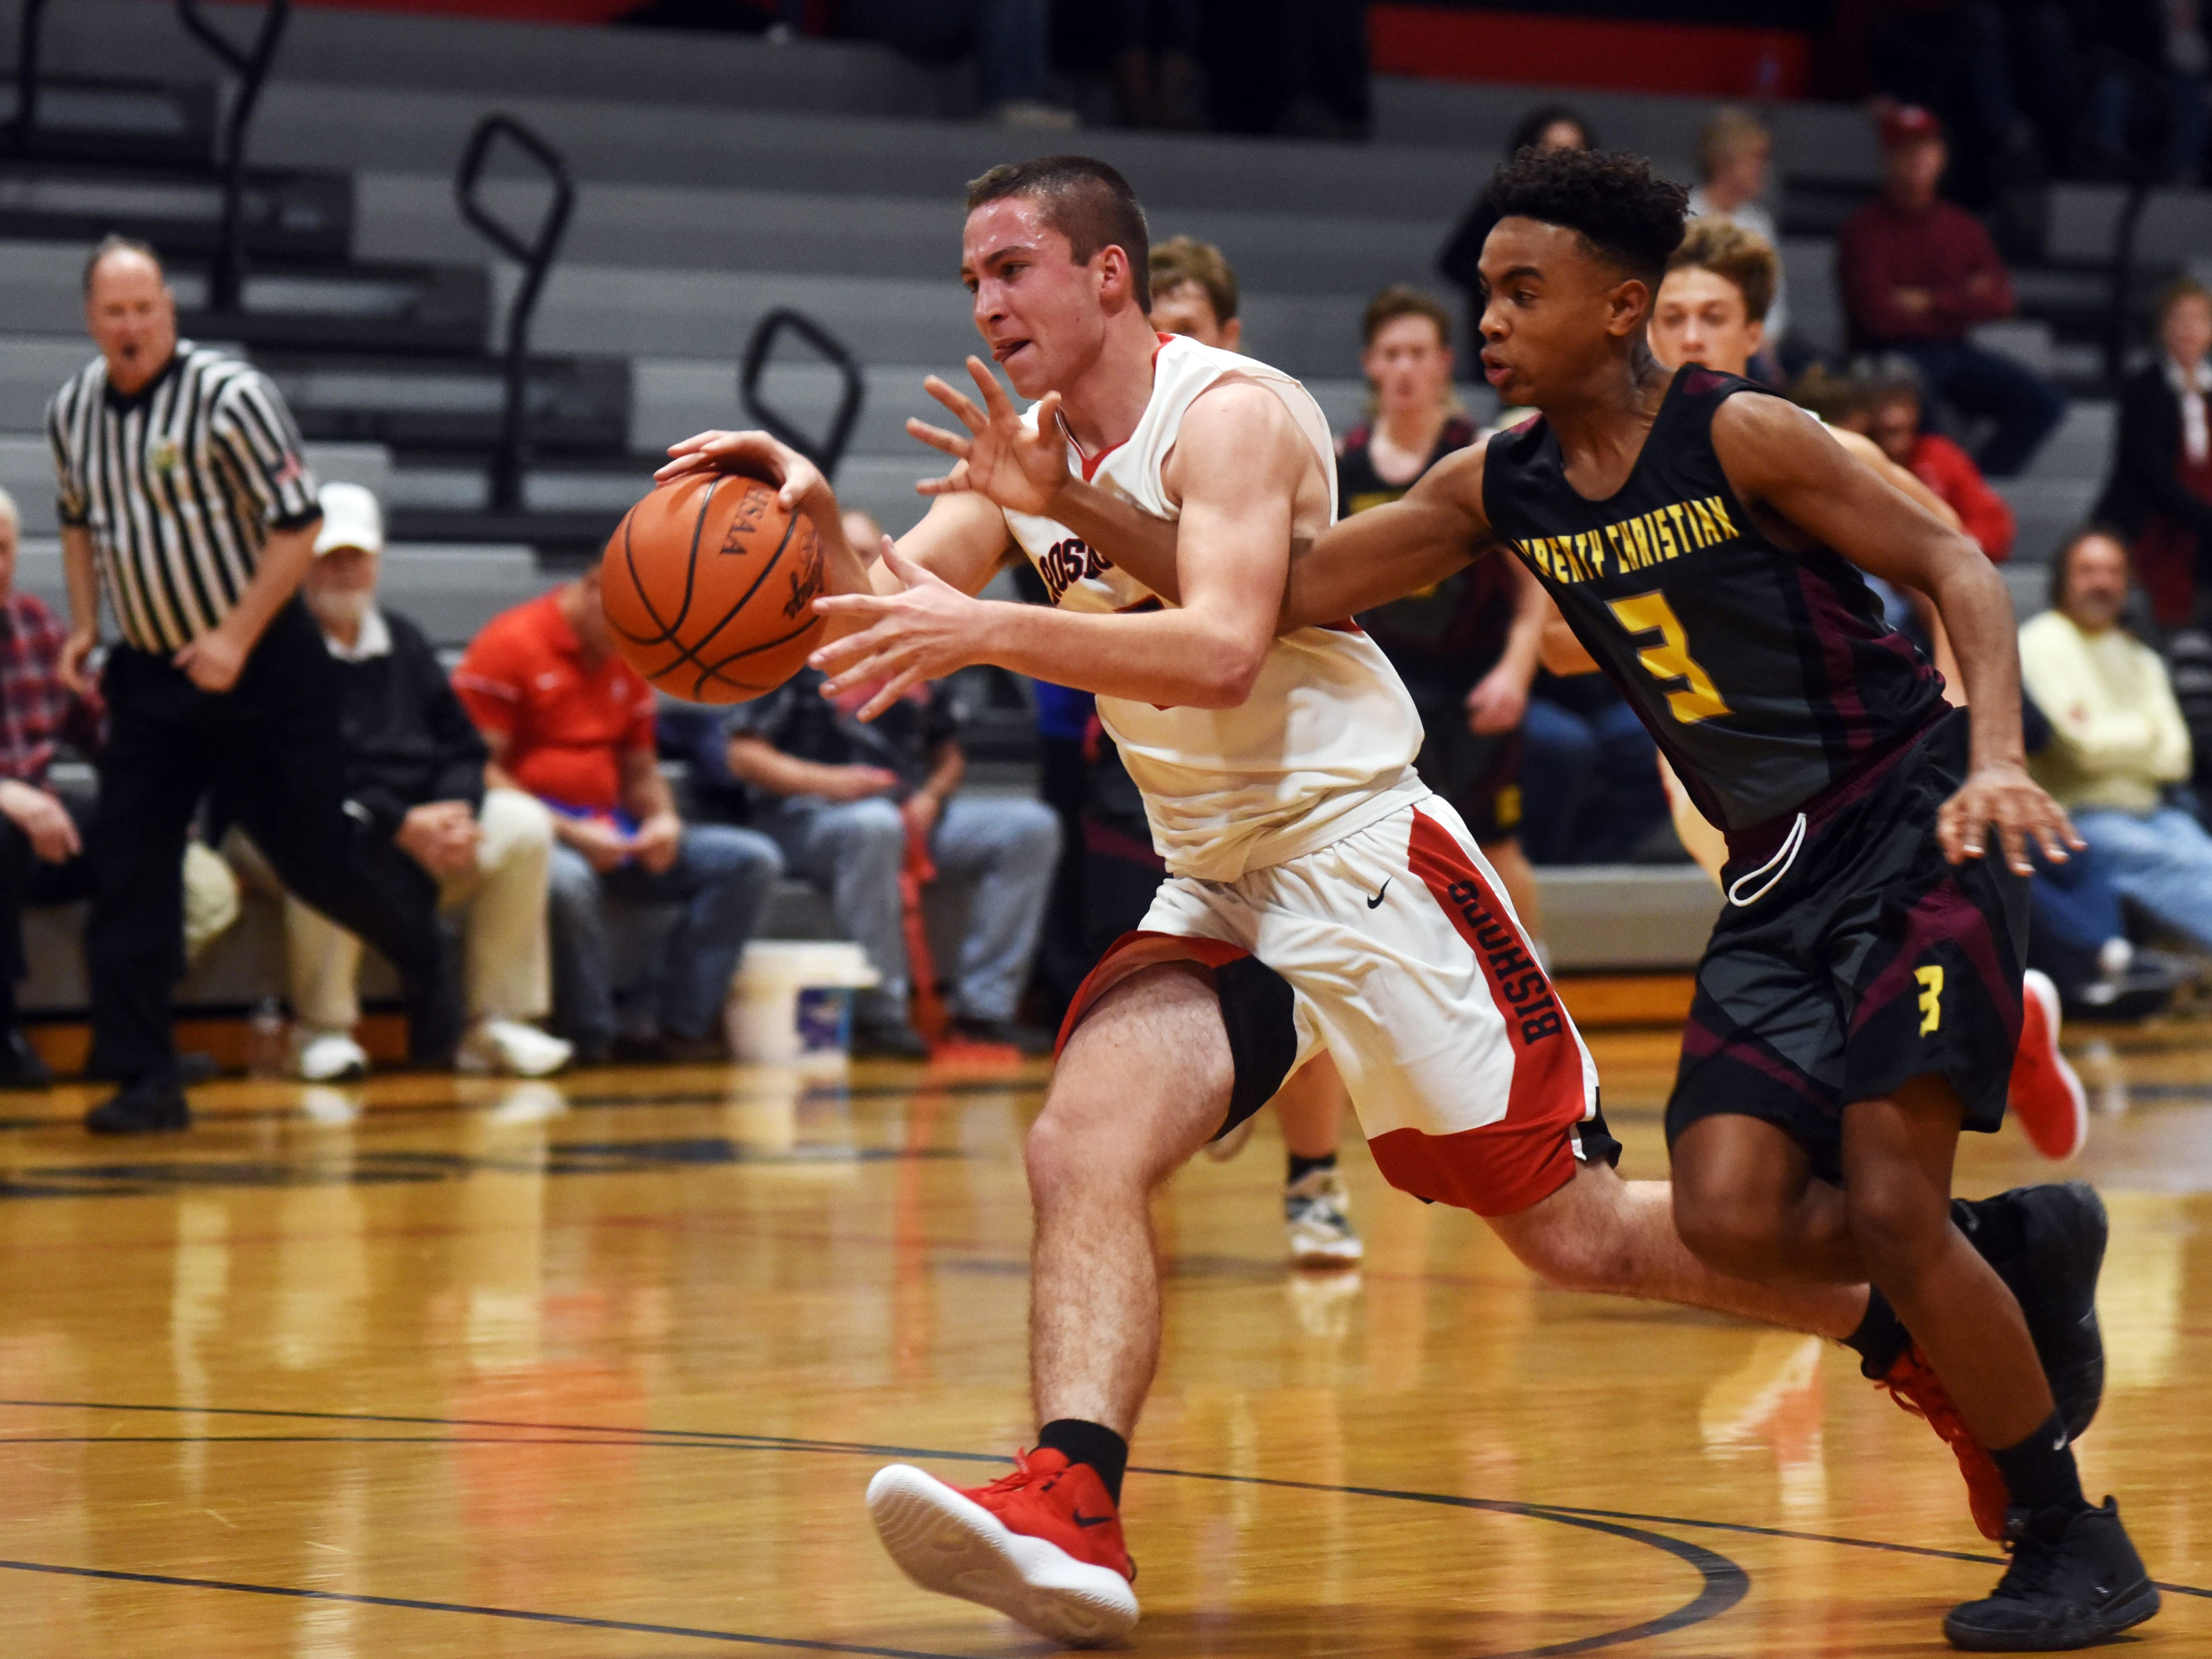 Rosecrans' Marcus Browning, left, steals the ball during the second quarter against Liberty Christian on Monday night at Rogge Gymnasium.